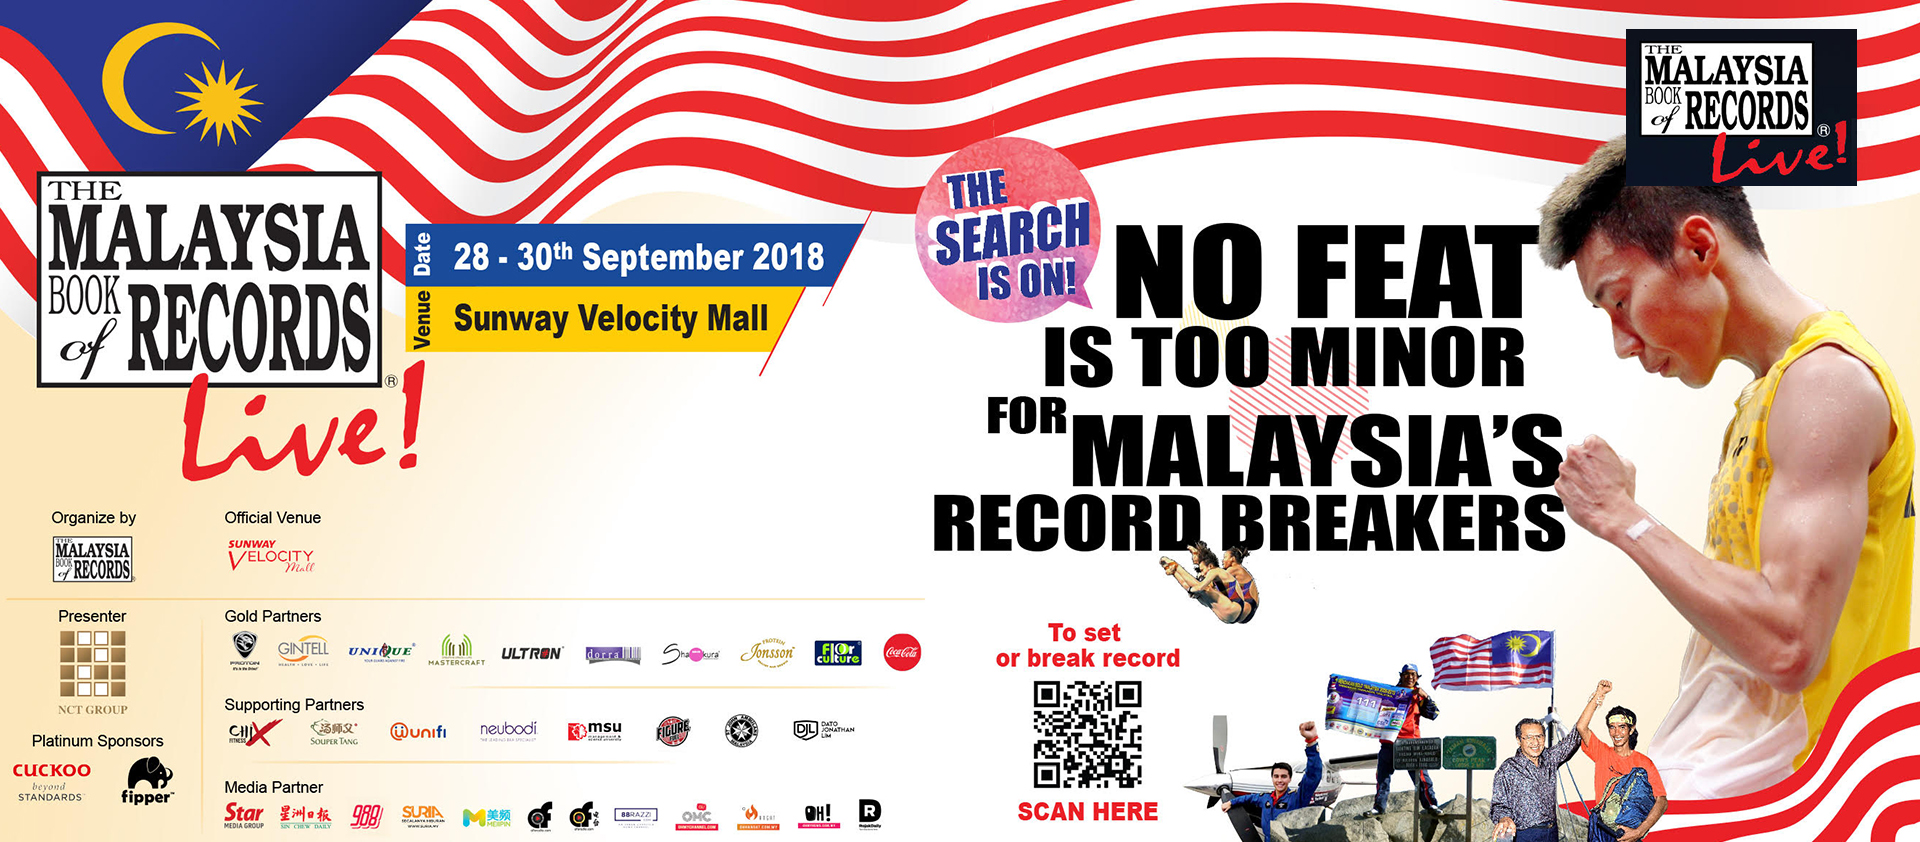 This Is Your Chance To Become A Record Holder At The Malaysia Book Of Records Roadshow Lifestyle Rojak Daily